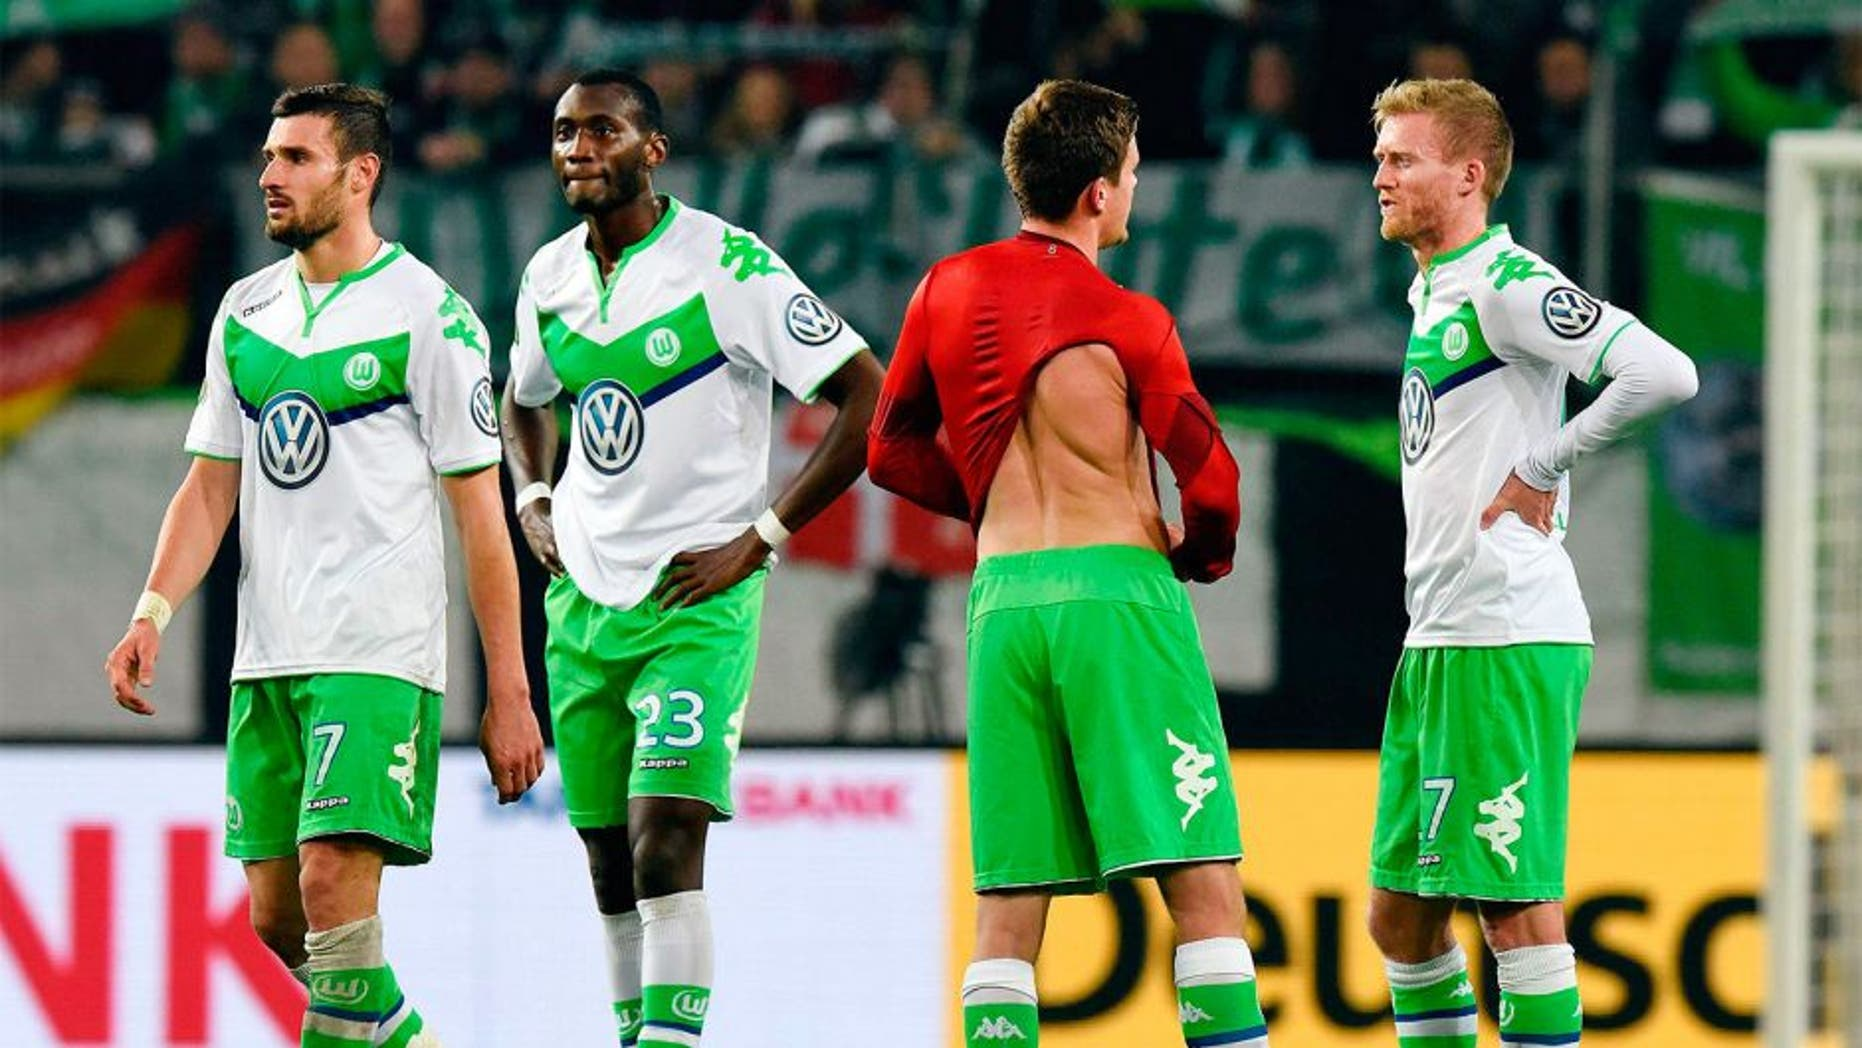 VfL Wolfsburg players react after their German cup (DFB Pokal) second round soccer match against Bayern Munich in Wolfsburg, Germany, October 27, 2015. REUTERS/Fabian Bimmer DFB RULES PROHIBIT USE IN MMS SERVICES VIA HANDHELD DEVICES UNTIL TWO HOURS AFTER A MATCH AND ANY USAGE ON INTERNET OR ONLINE MEDIA SIMULATING VIDEO FOOTAGE DURING THE MATCH. Picture Supplied by Action Images